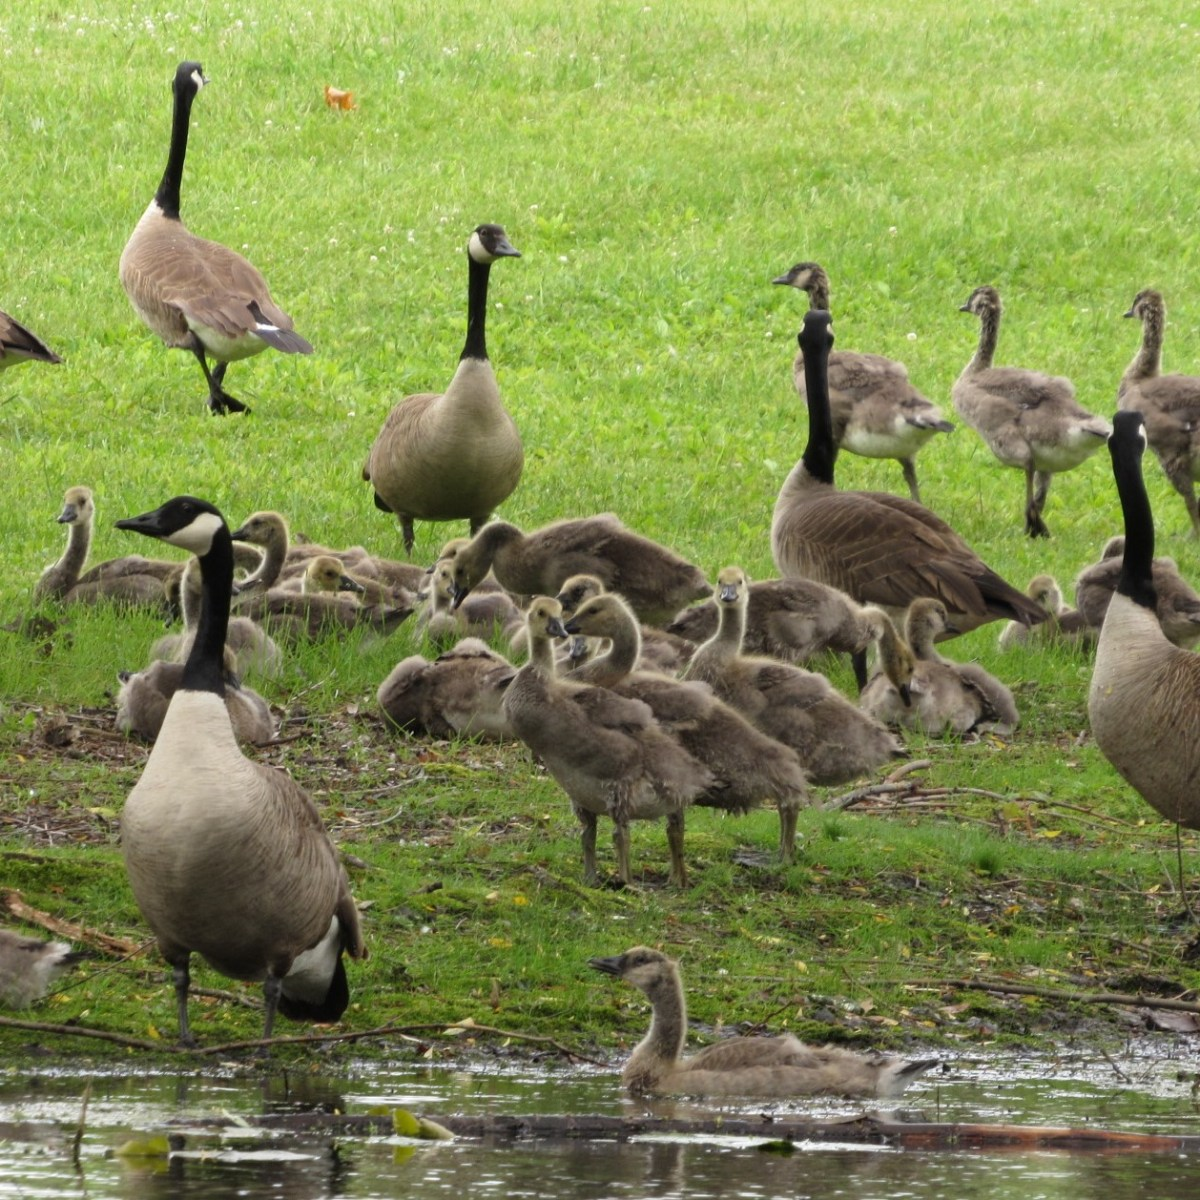 A large number of geese and goslings gathered at the edge of water.